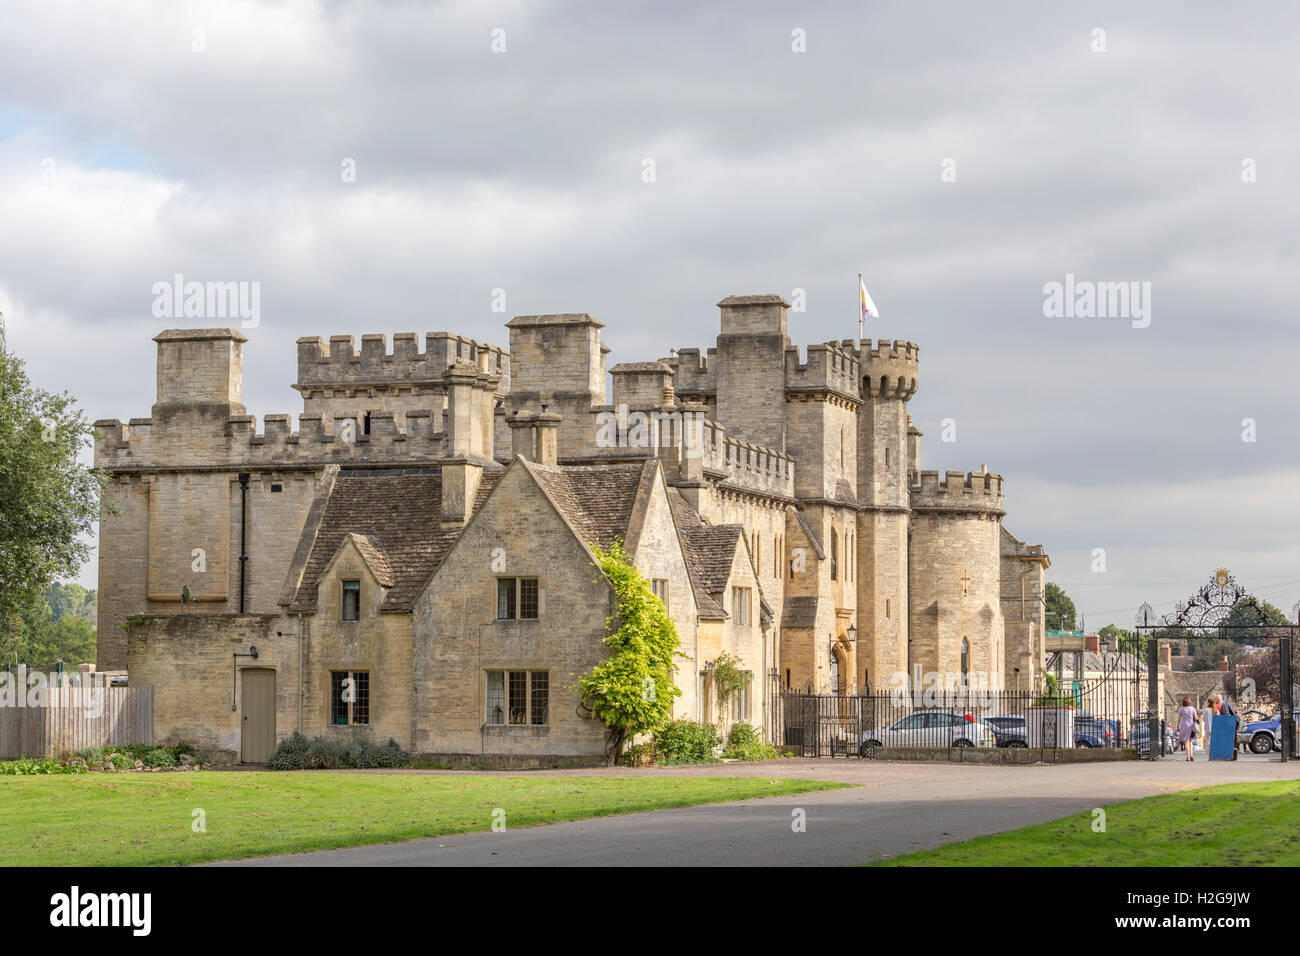 Cecily Hill Barracks At The Entrance To Cirencester Park Gloucestershire England UK